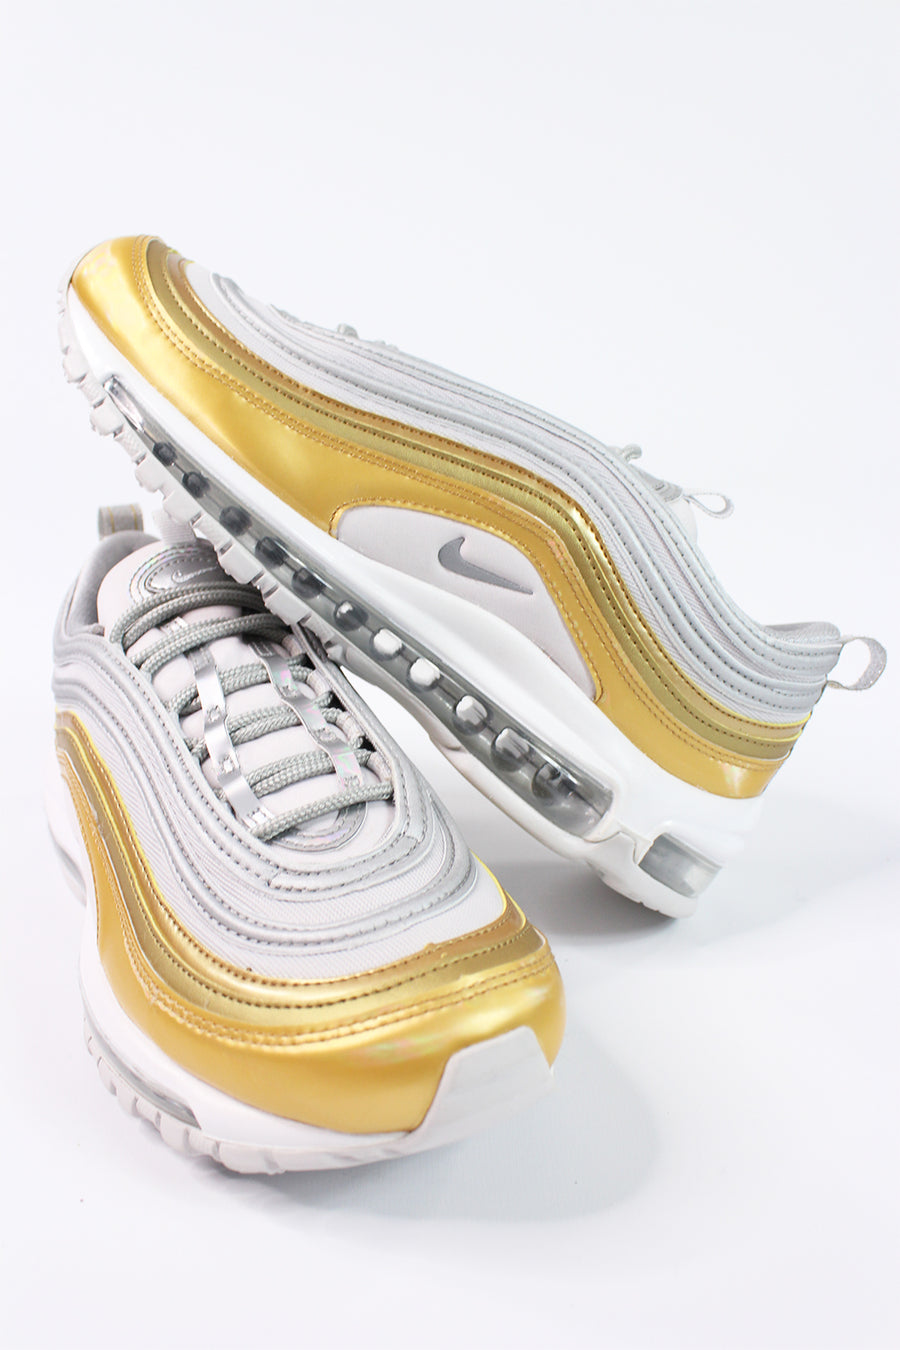 Nike - Air Max 97 Special Edtion Women (Vast Grey/ Metallic Silver Metallic Gold) AQ4137-001